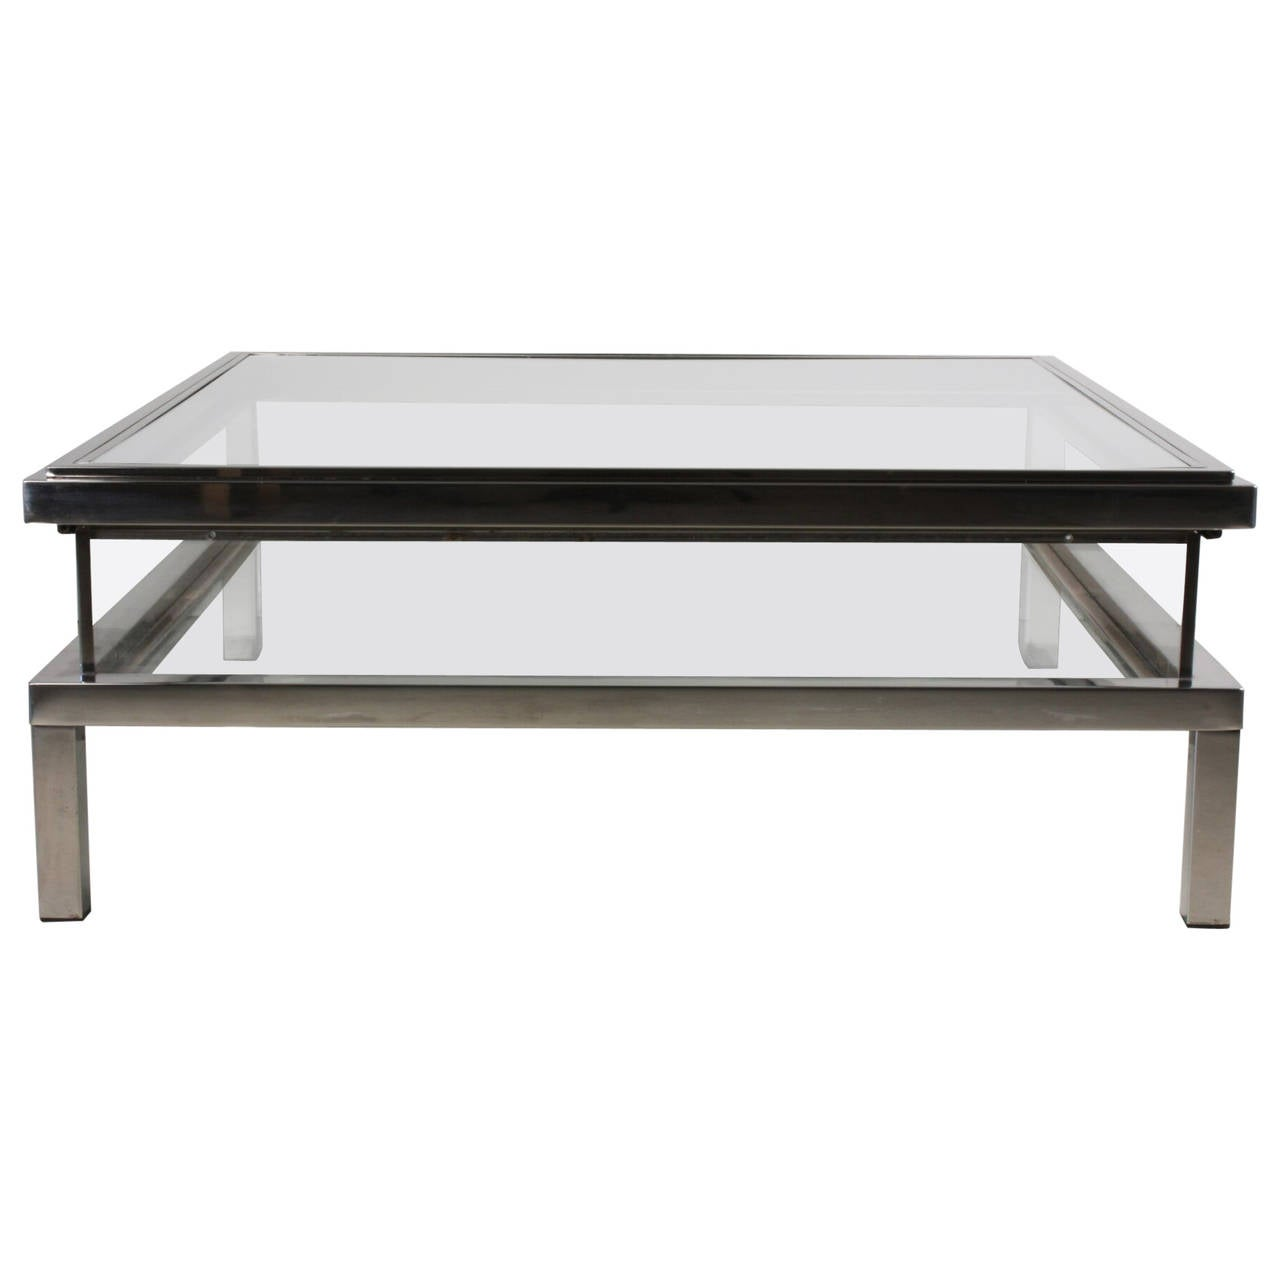 Jansen Coffee Table Maison Jansen Vitrine Coffee Table With Sliding Top At 1stdibs